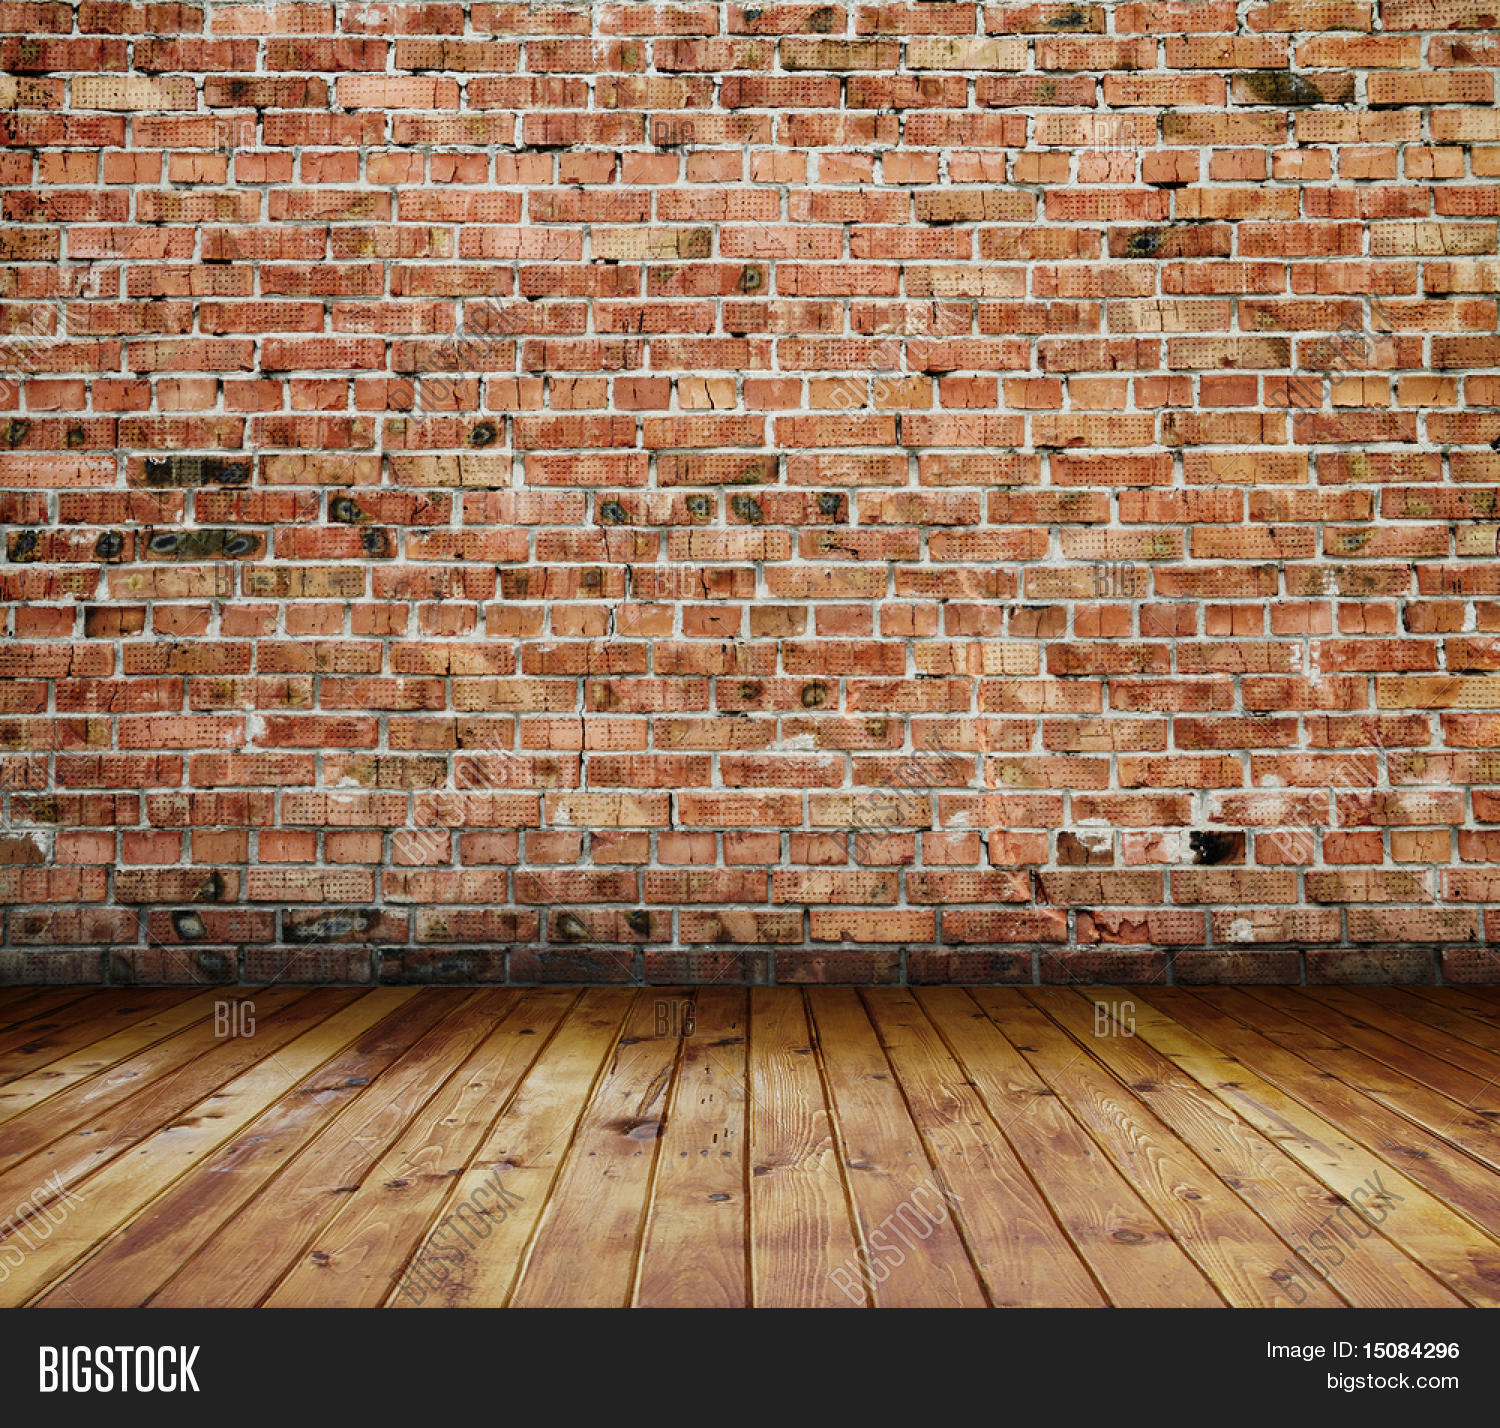 Old Interior Brick Image amp Photo Free Trial Bigstock